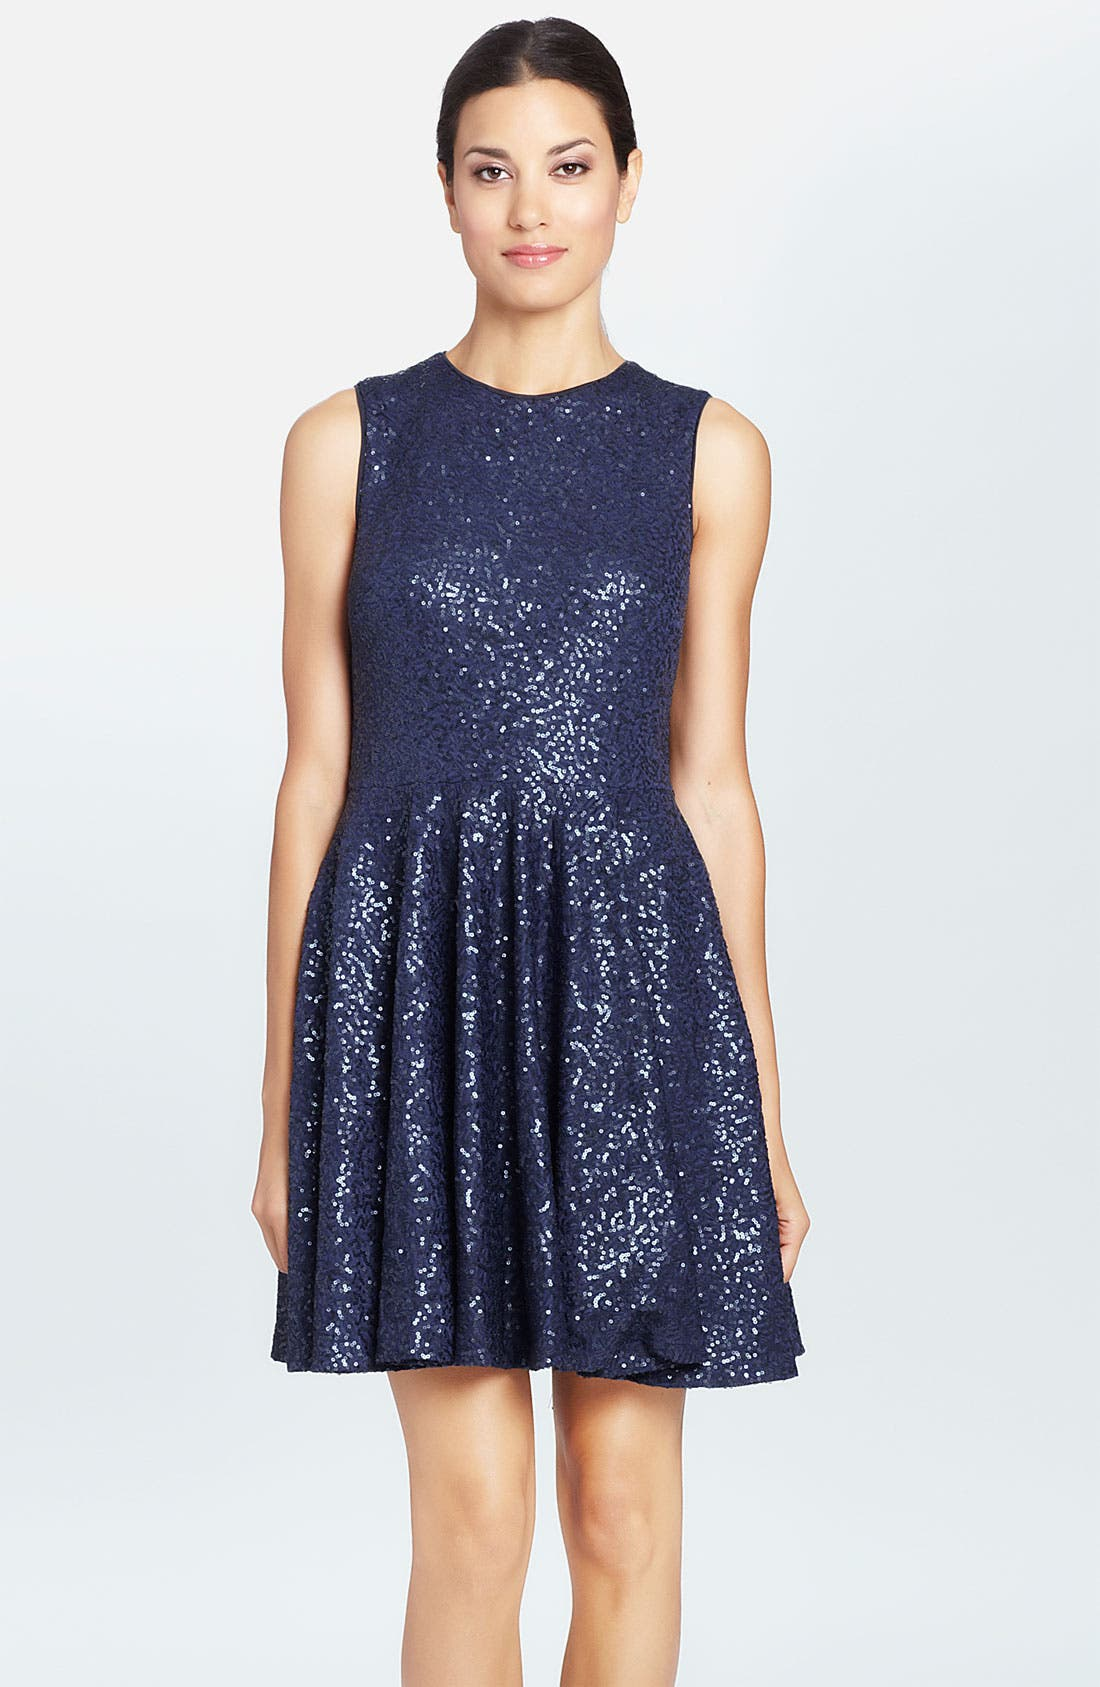 Alternate Image 1 Selected - Cynthia Steffe 'Sabella' Sequin Fit & Flare Dress